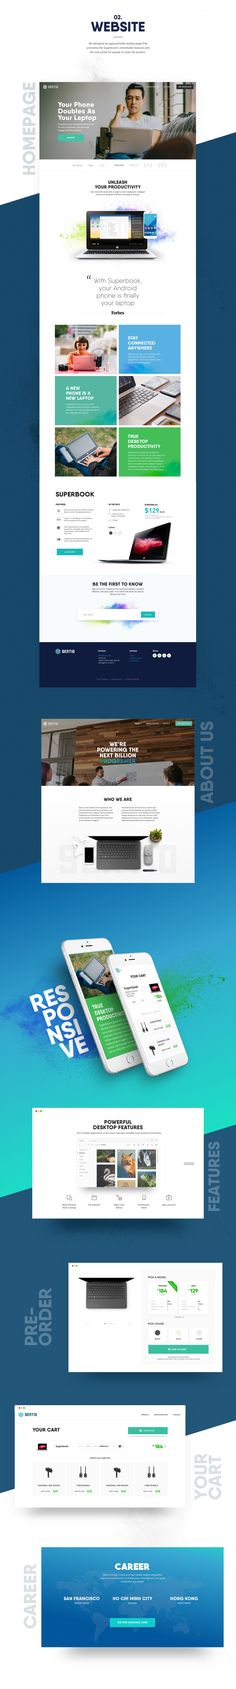 A full design package for Sentio and their awesome product Superbook, check out their website https://sentio.com/